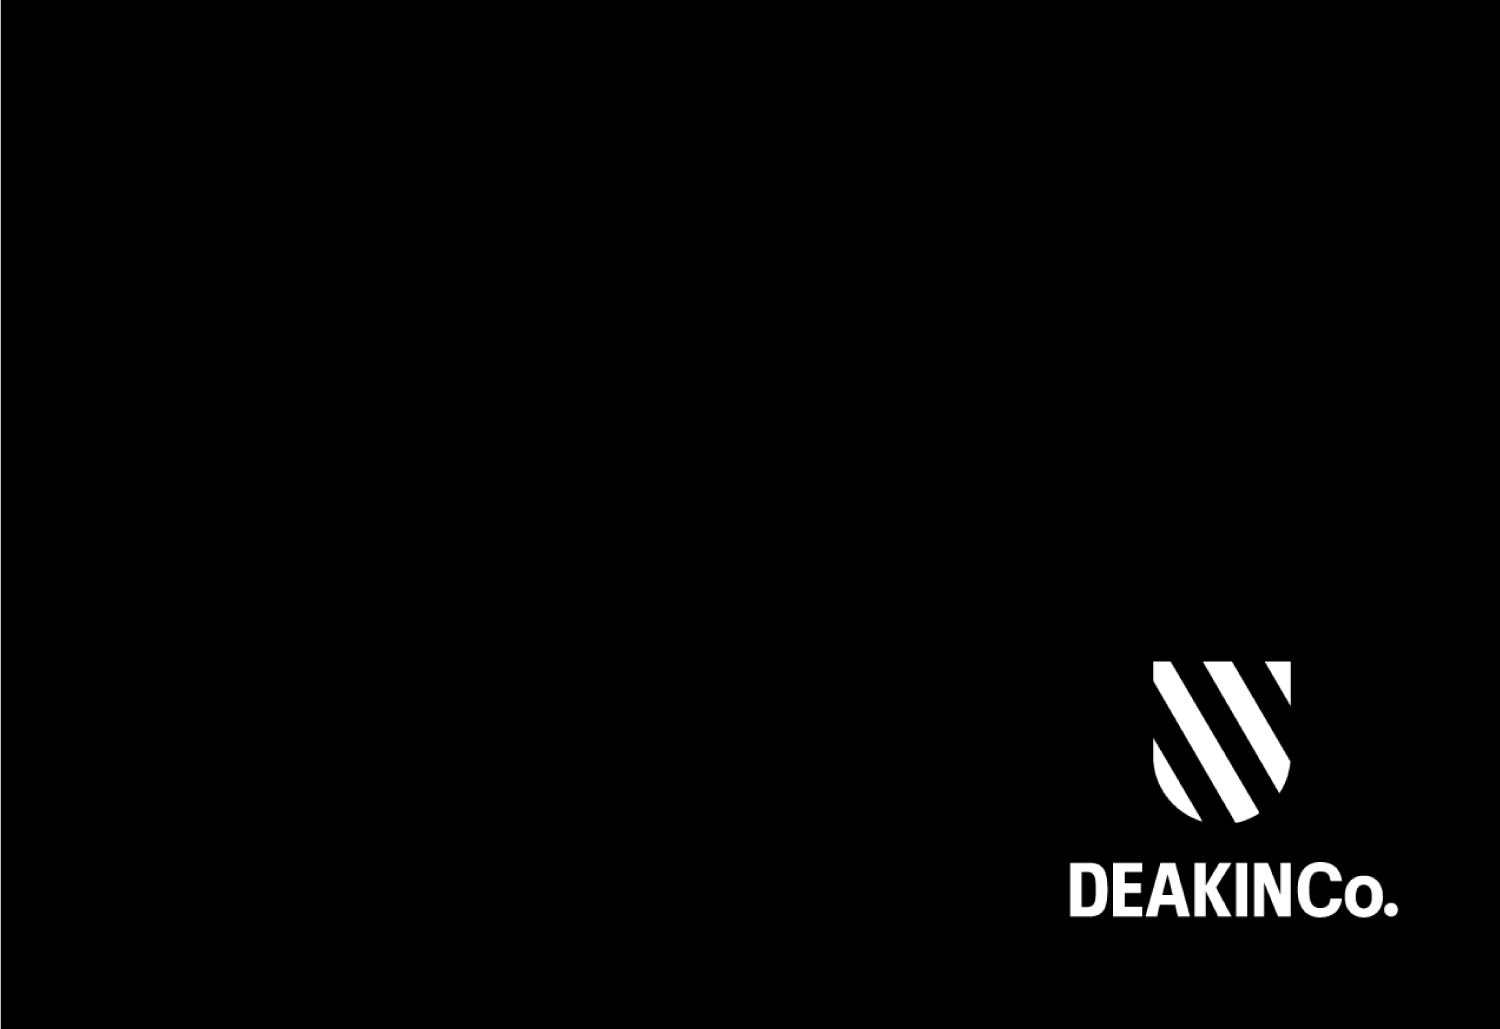 Coming Soon - DEAKINCO.